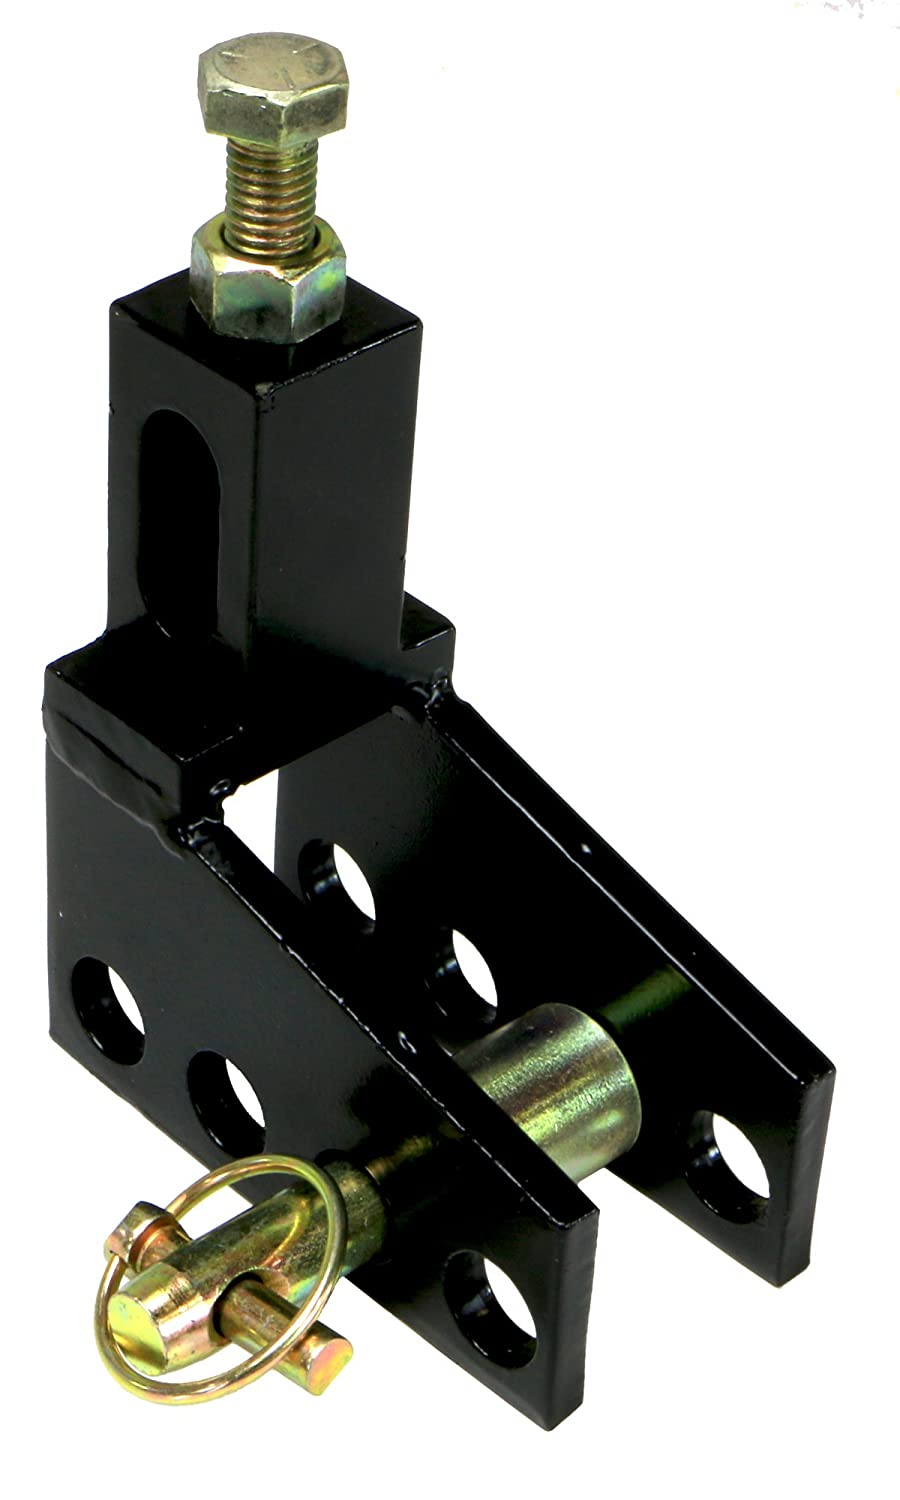 RanchEx 102864 Adapter for Non-Compliant Cat 1 AS ABE Implements and Front Mount Quick Hitches